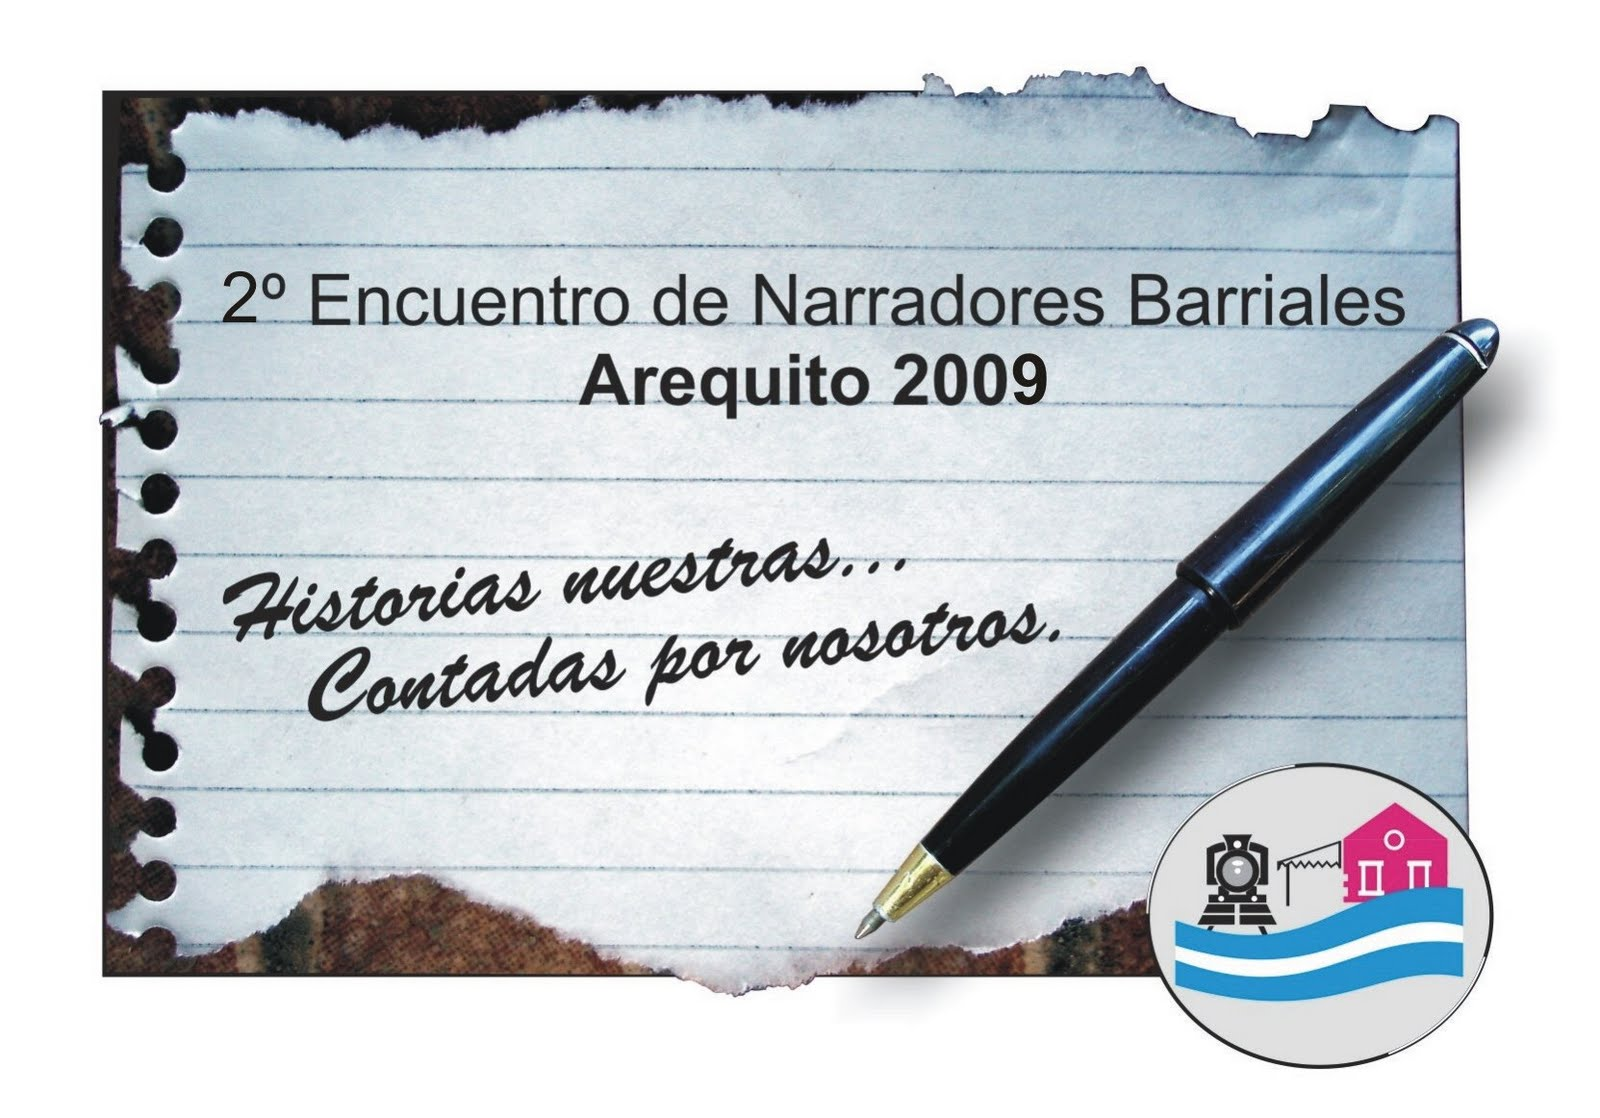 Narradores Barriales Arequito